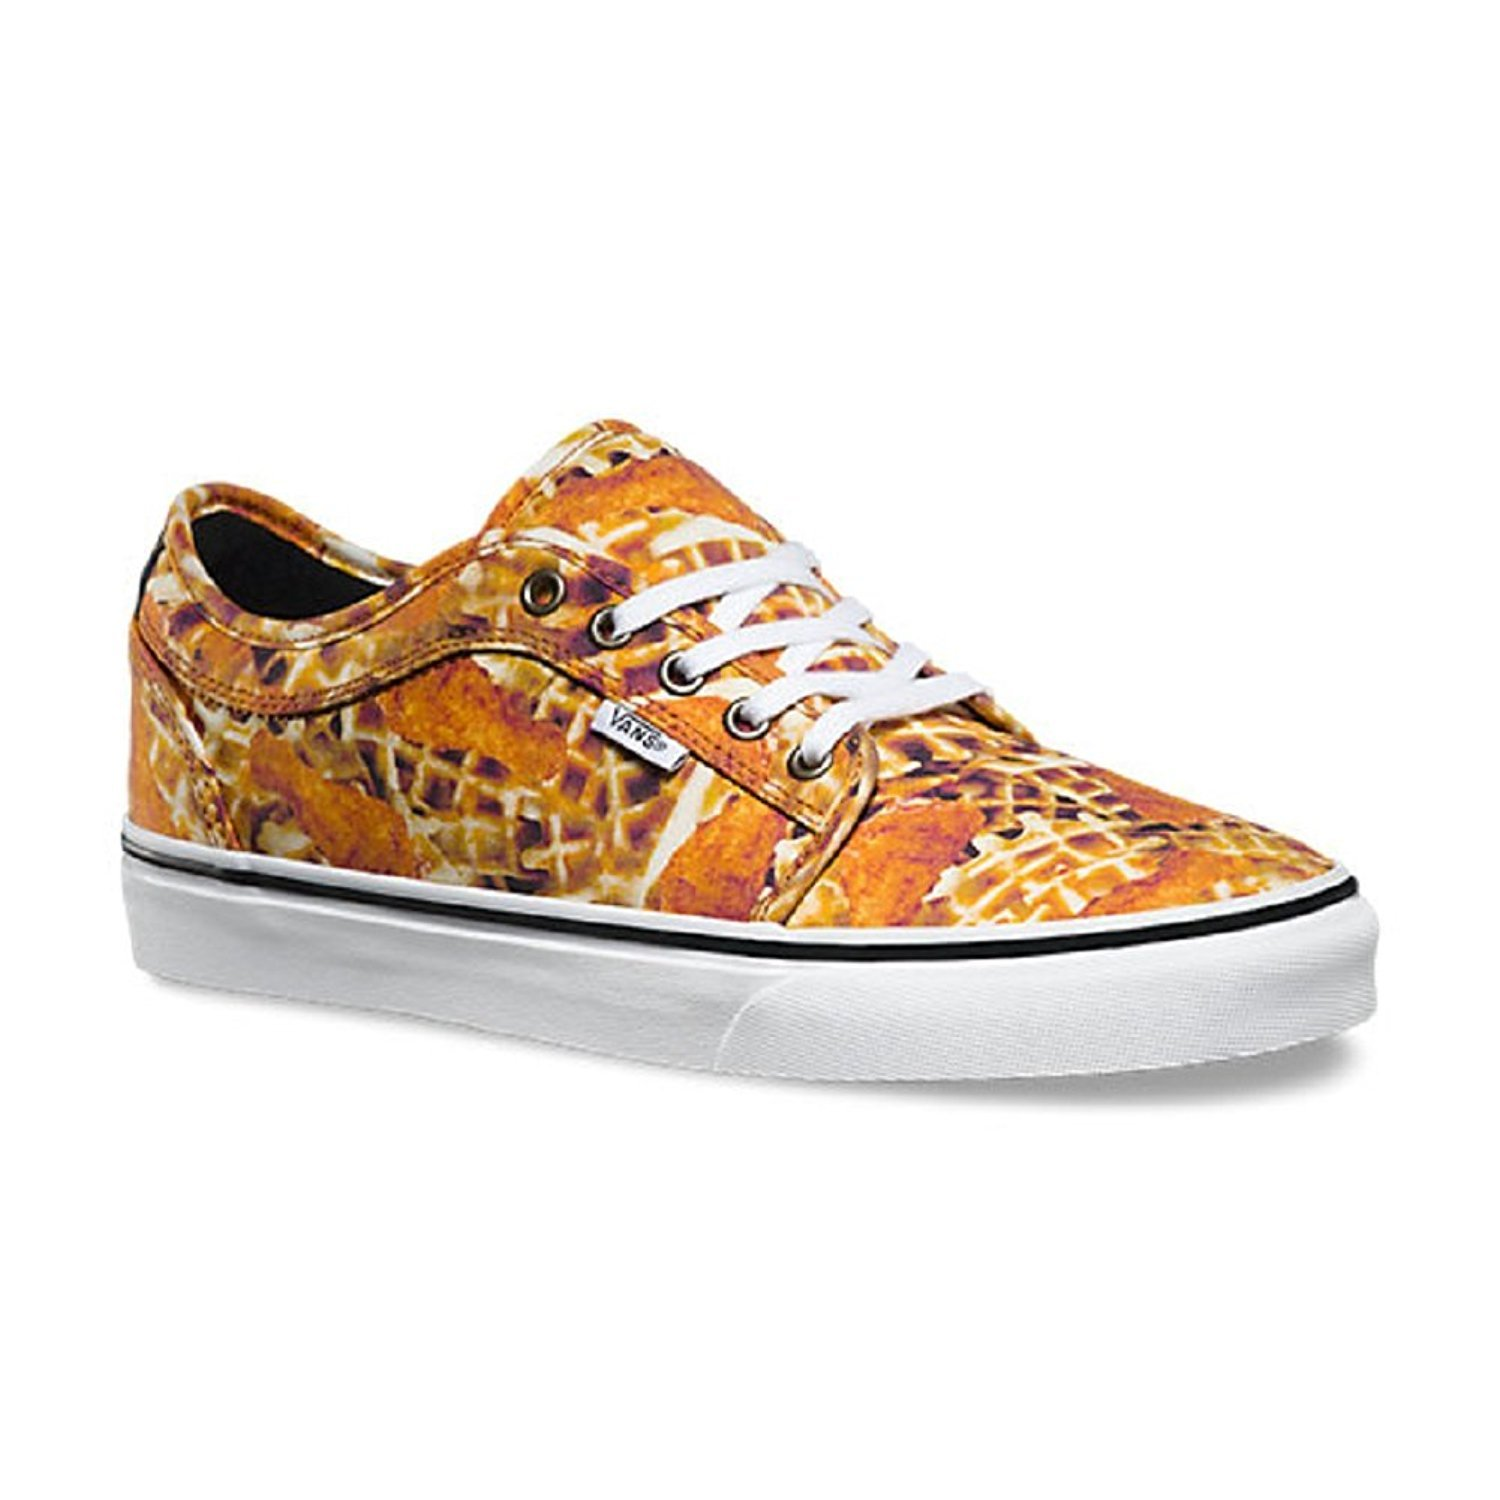 Canvas High Top Sneaker Casual Skate Shoe Mens Womens Chicken and Waffles